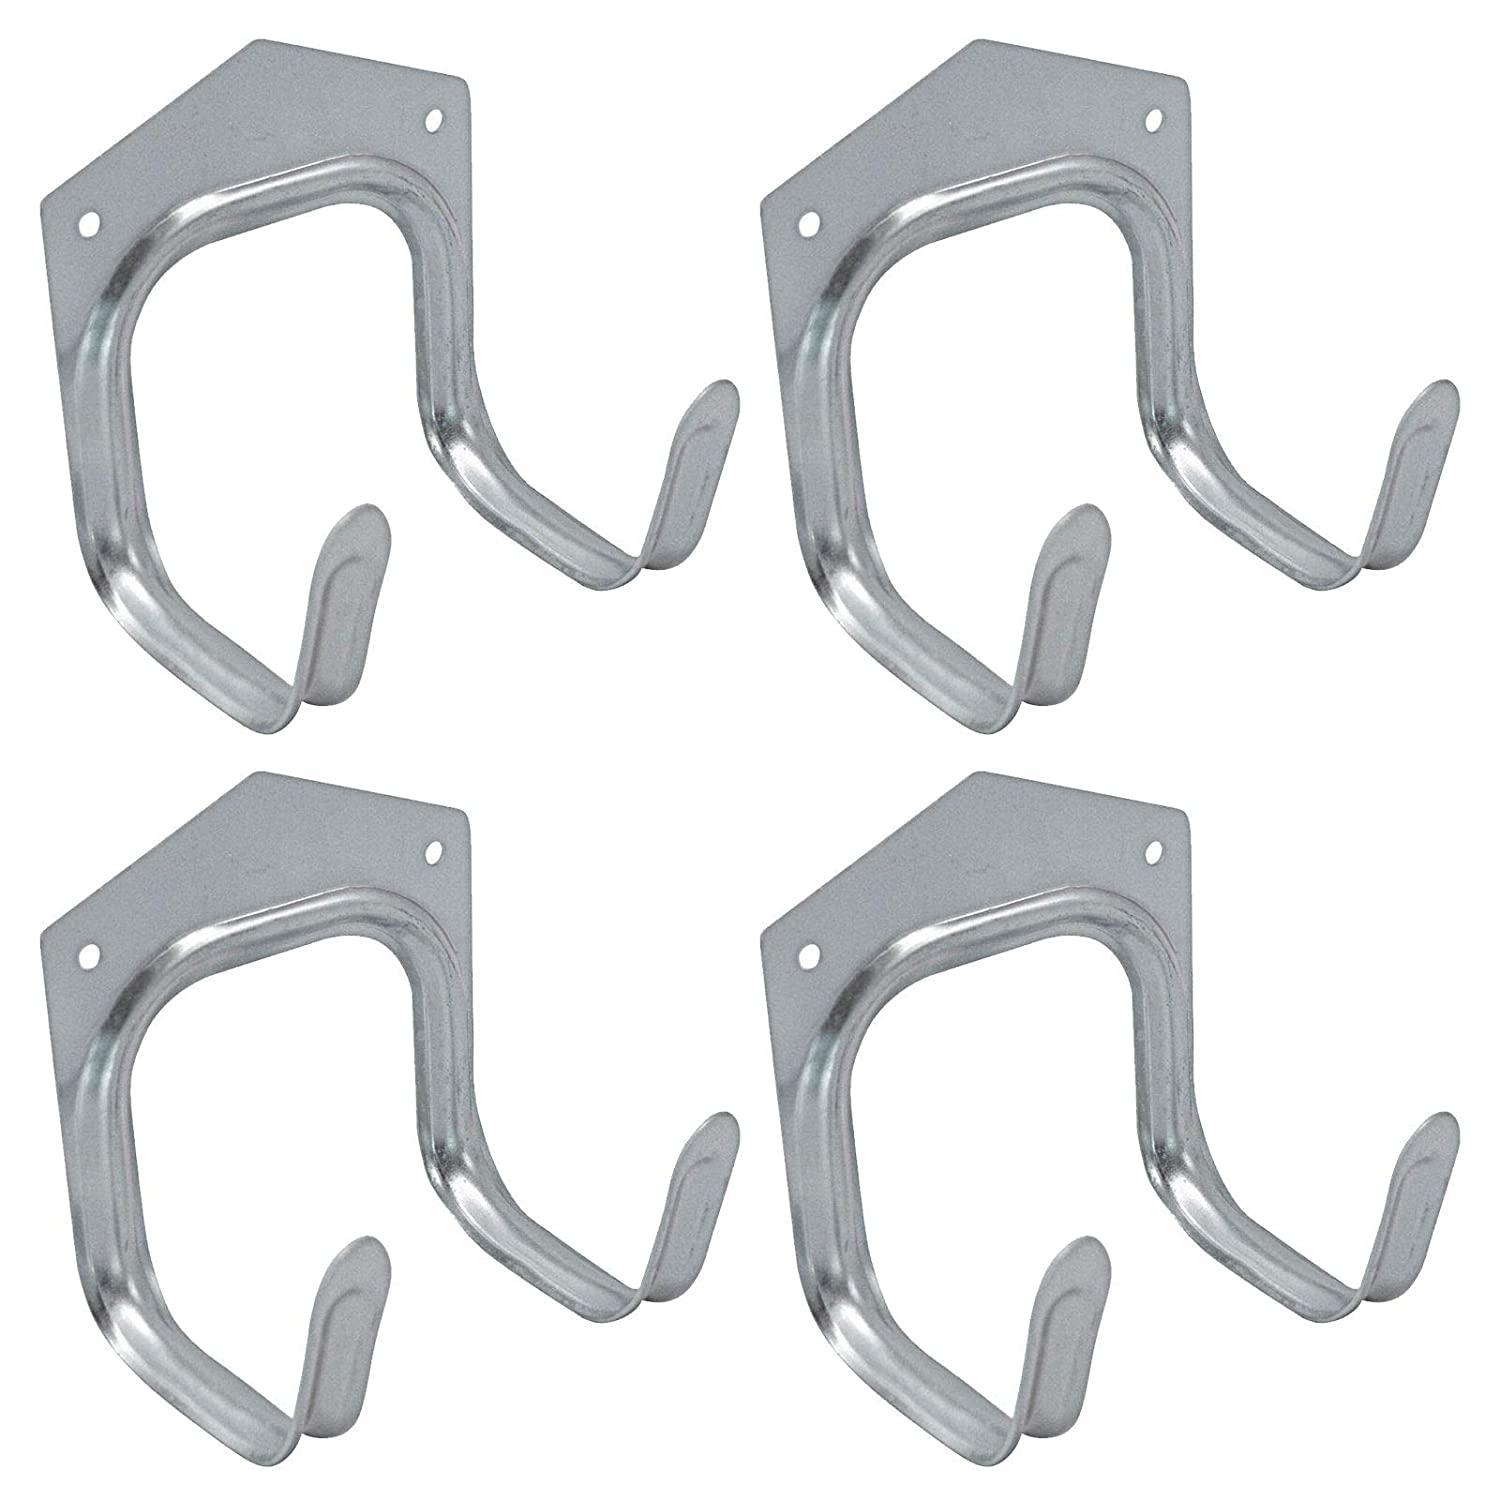 ASAB 4pk Wall Mounted Hanging Storage Hooks Galvanised Steel Ladder Rack Bike Garden Shed Tools Spade Fork Garage Tidy